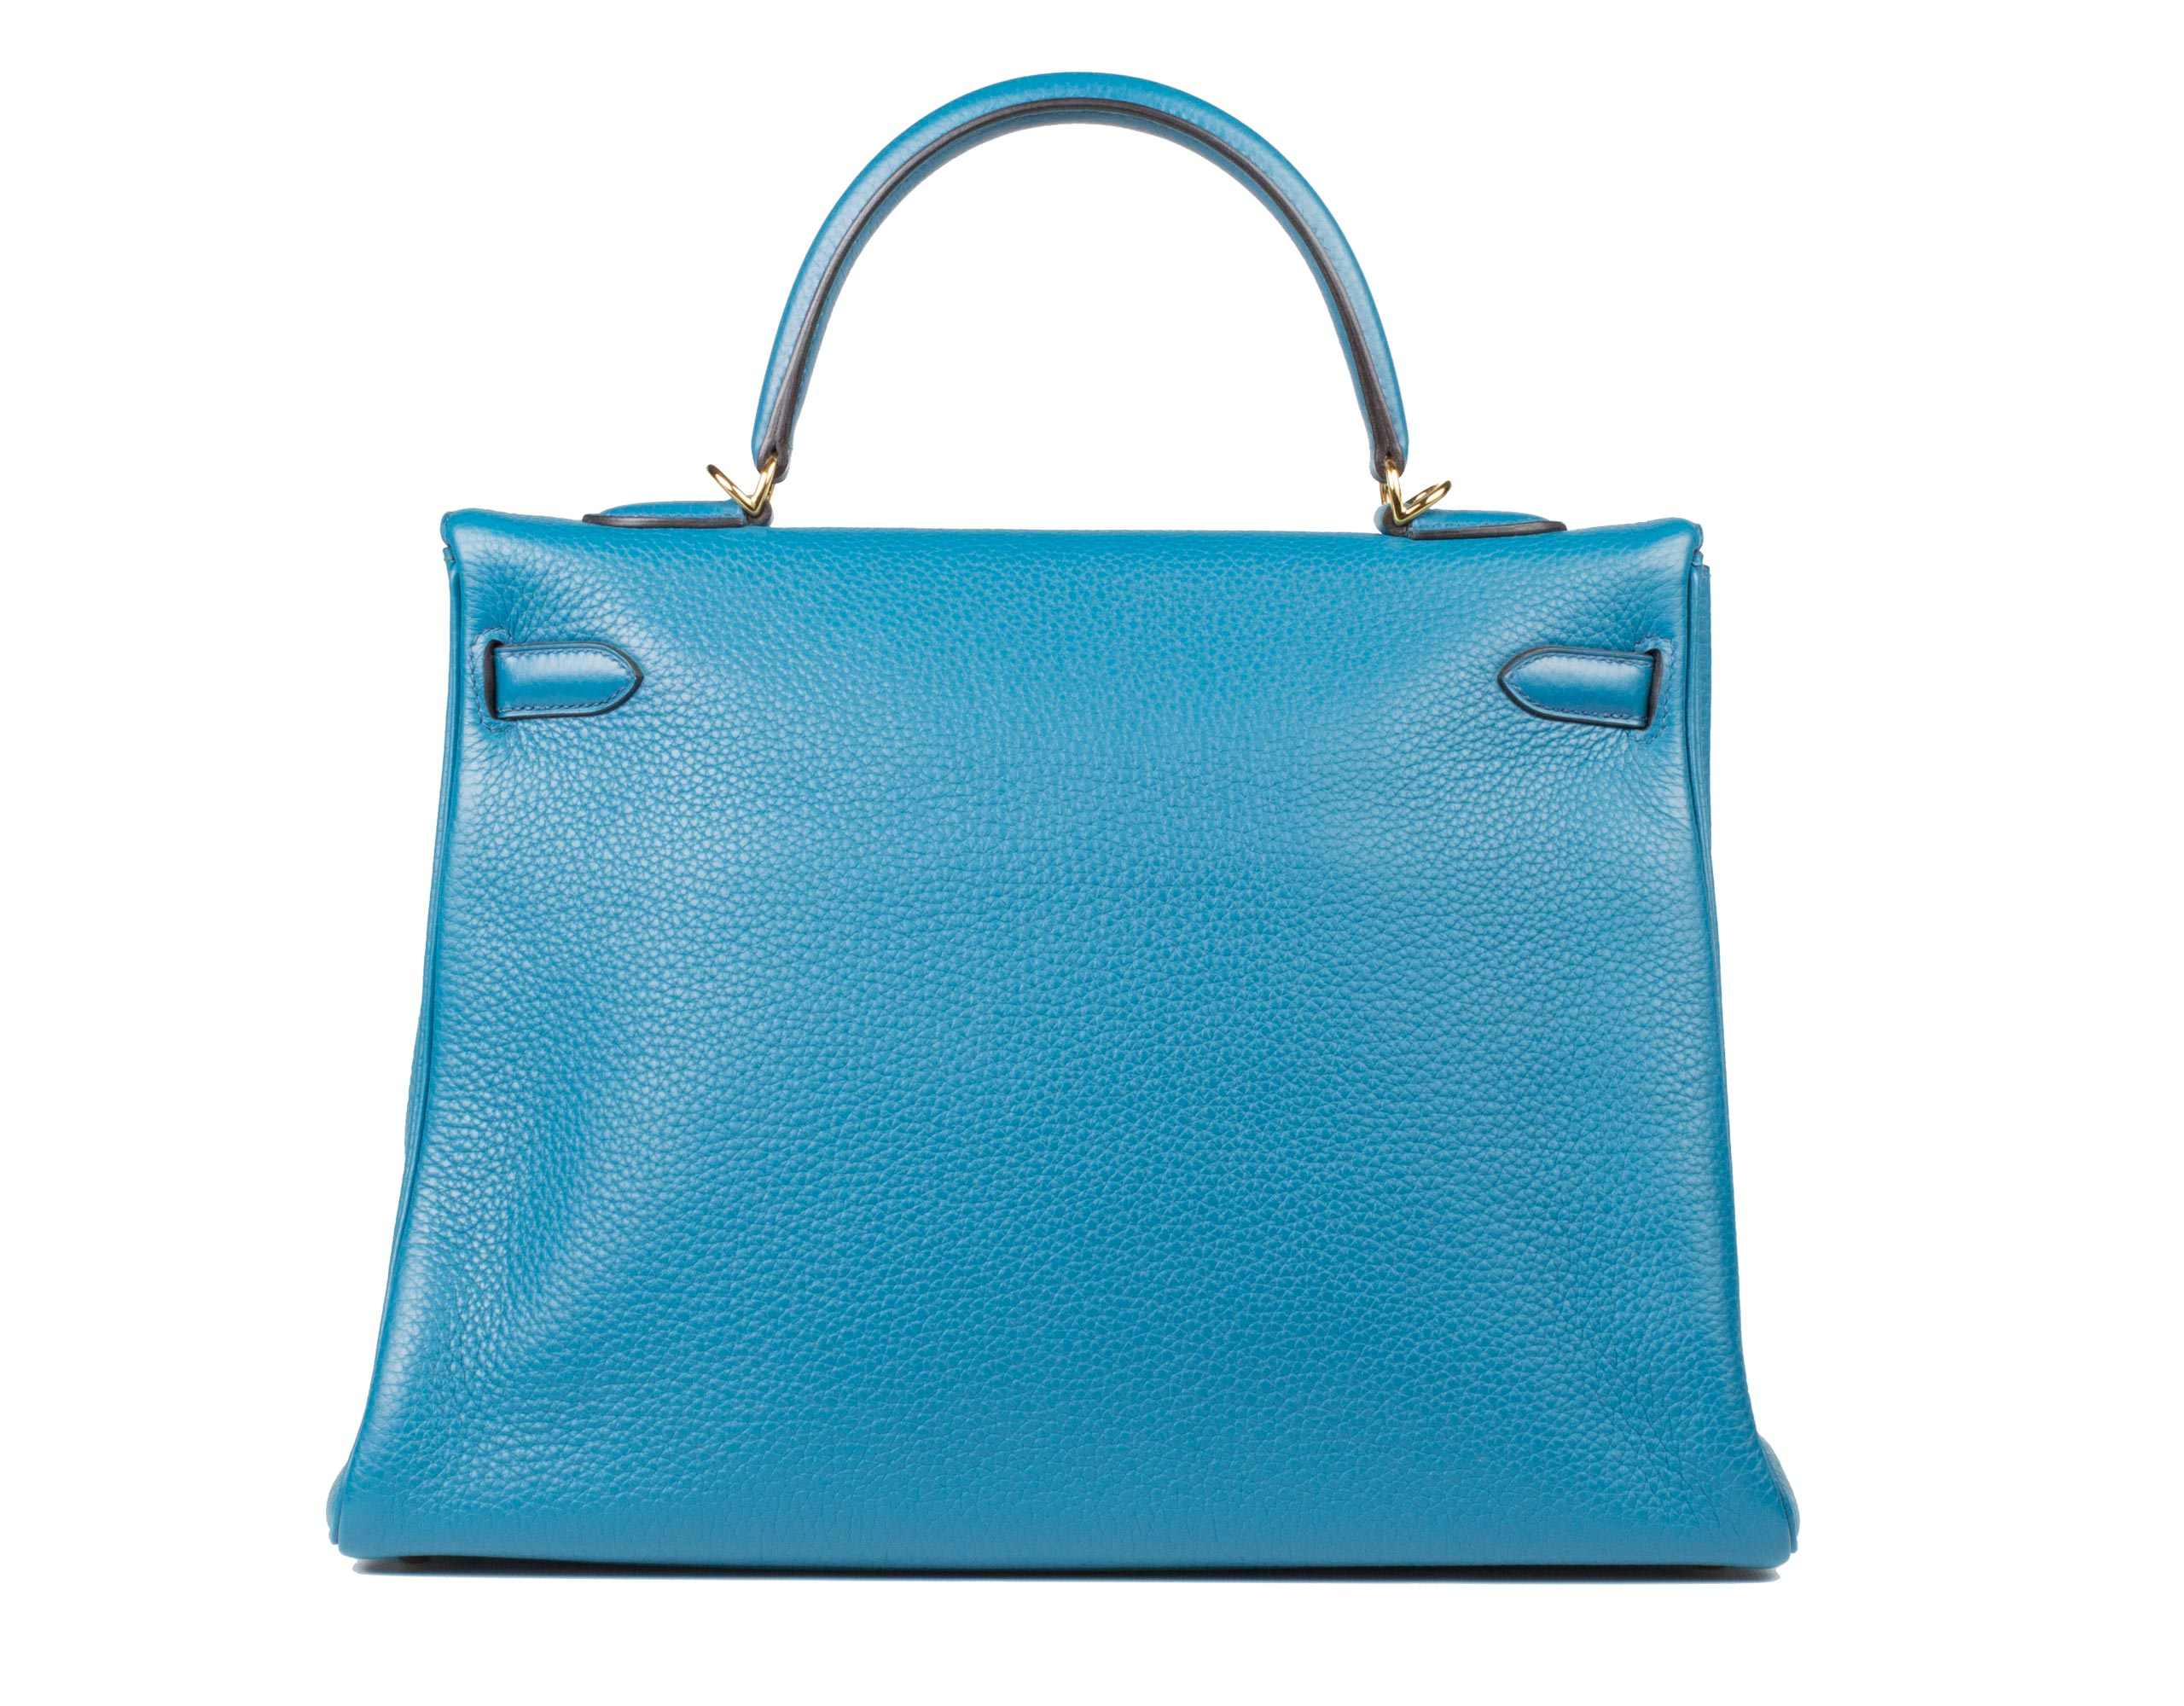 Hermes Bag Kelly Blue Izmir Togo 35cm K74 Back